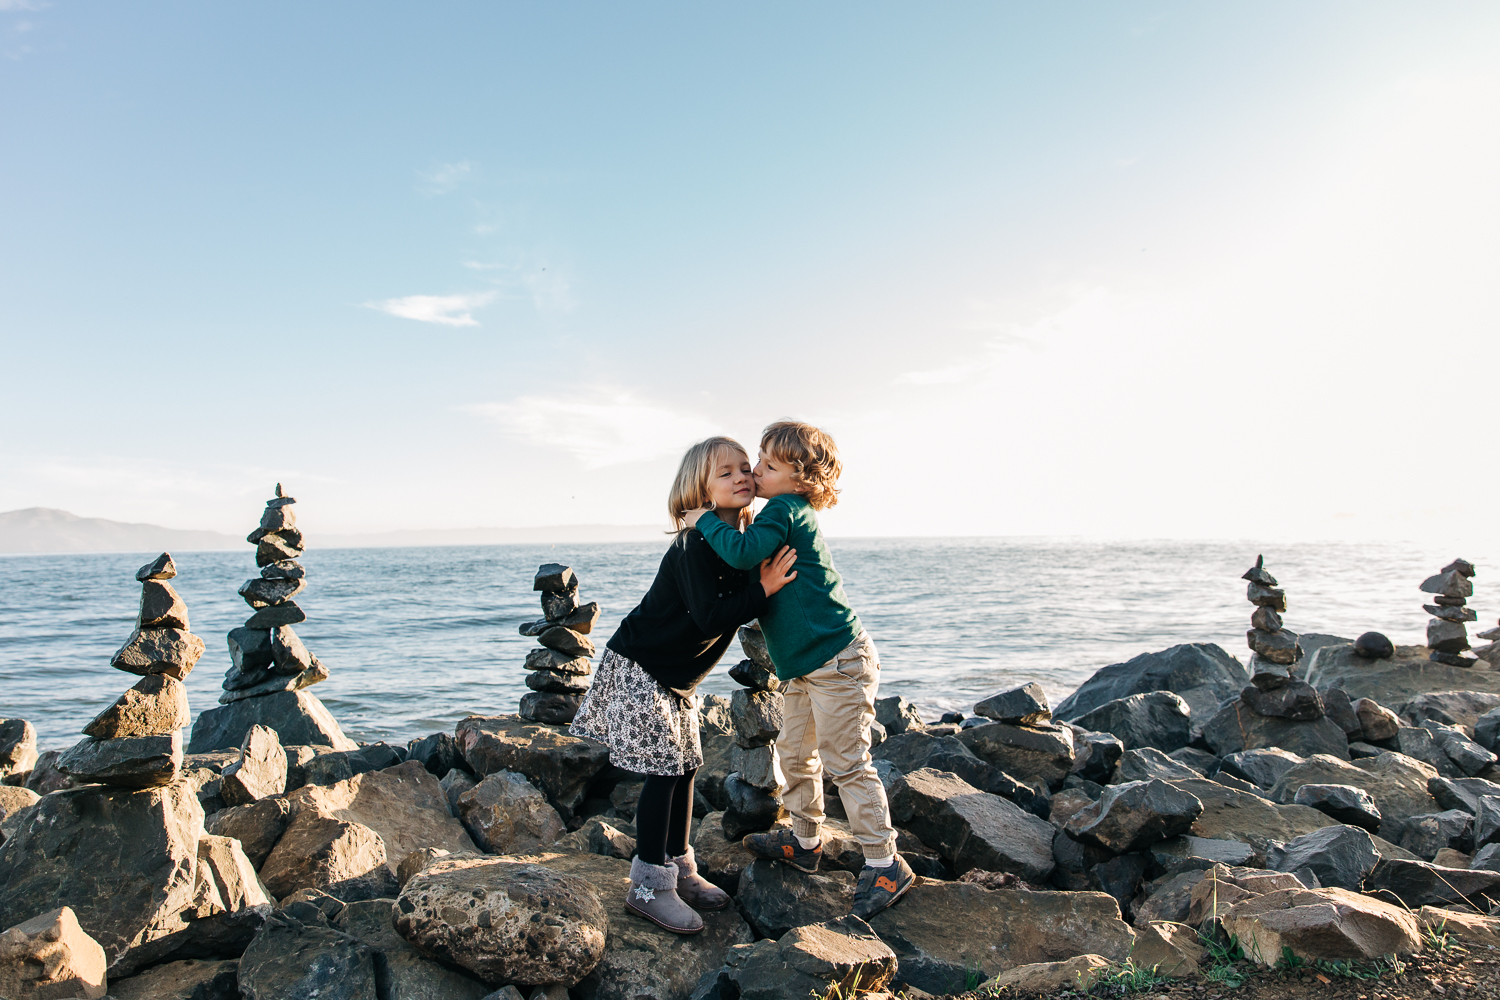 4 year old brother and 6 year old sister standing on rocks by the San Francisco Bay and hugging each other | Bay Area Family Photography